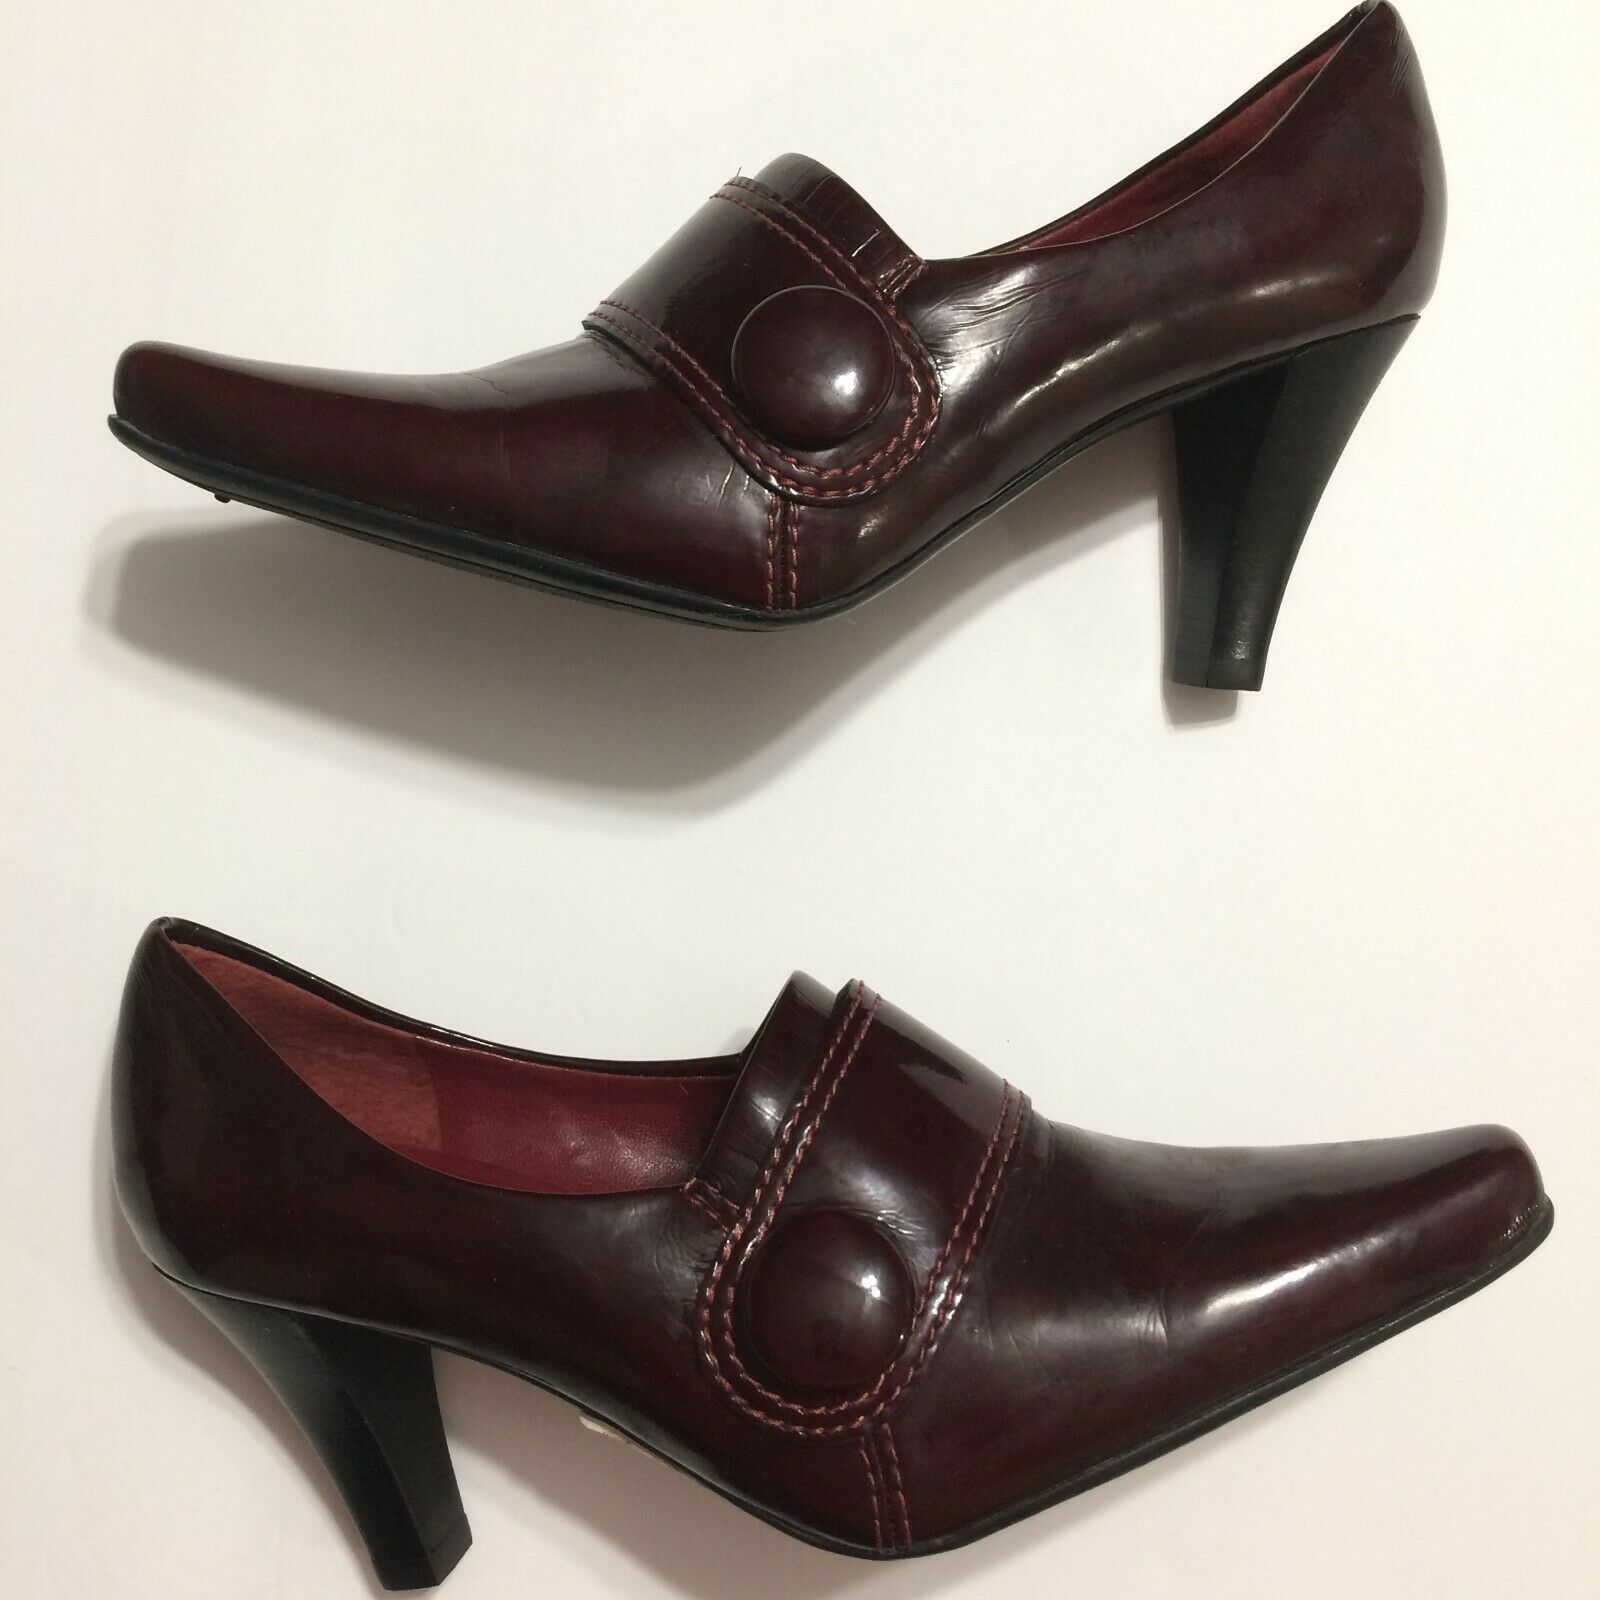 Primary image for Franco Sarto Heels Pumps Shoes Size 7 Burgundy Maroon Flavia New Without Box